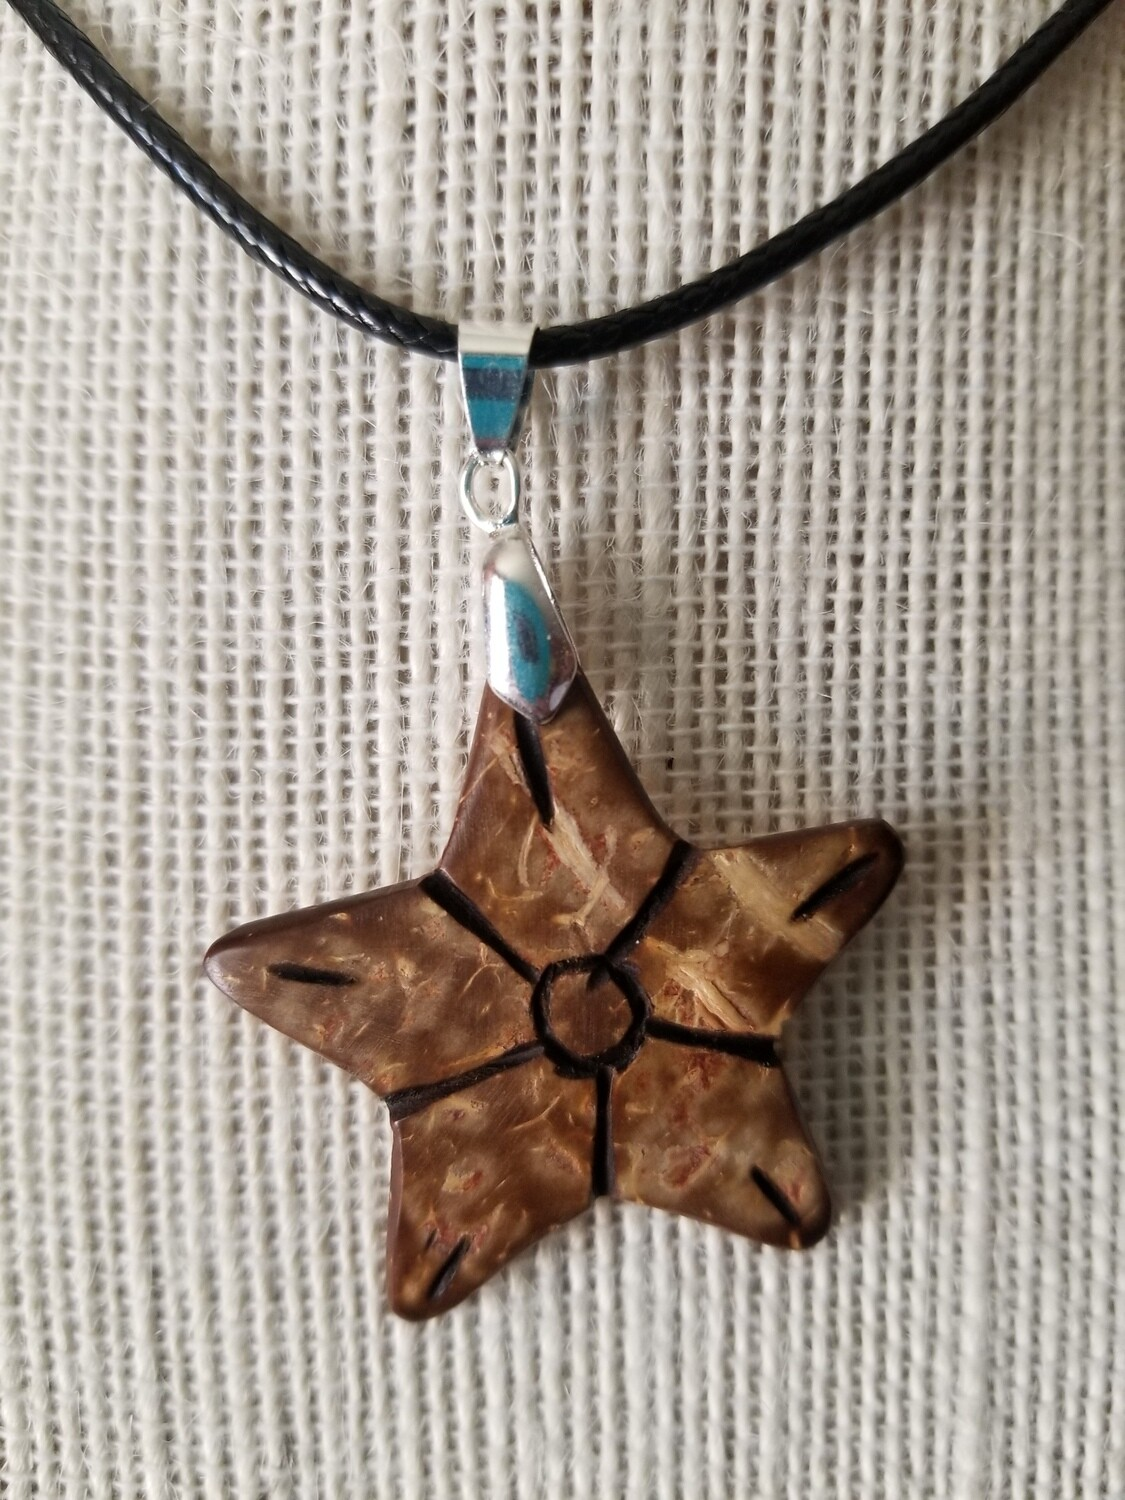 Coconut Start Necklace #5